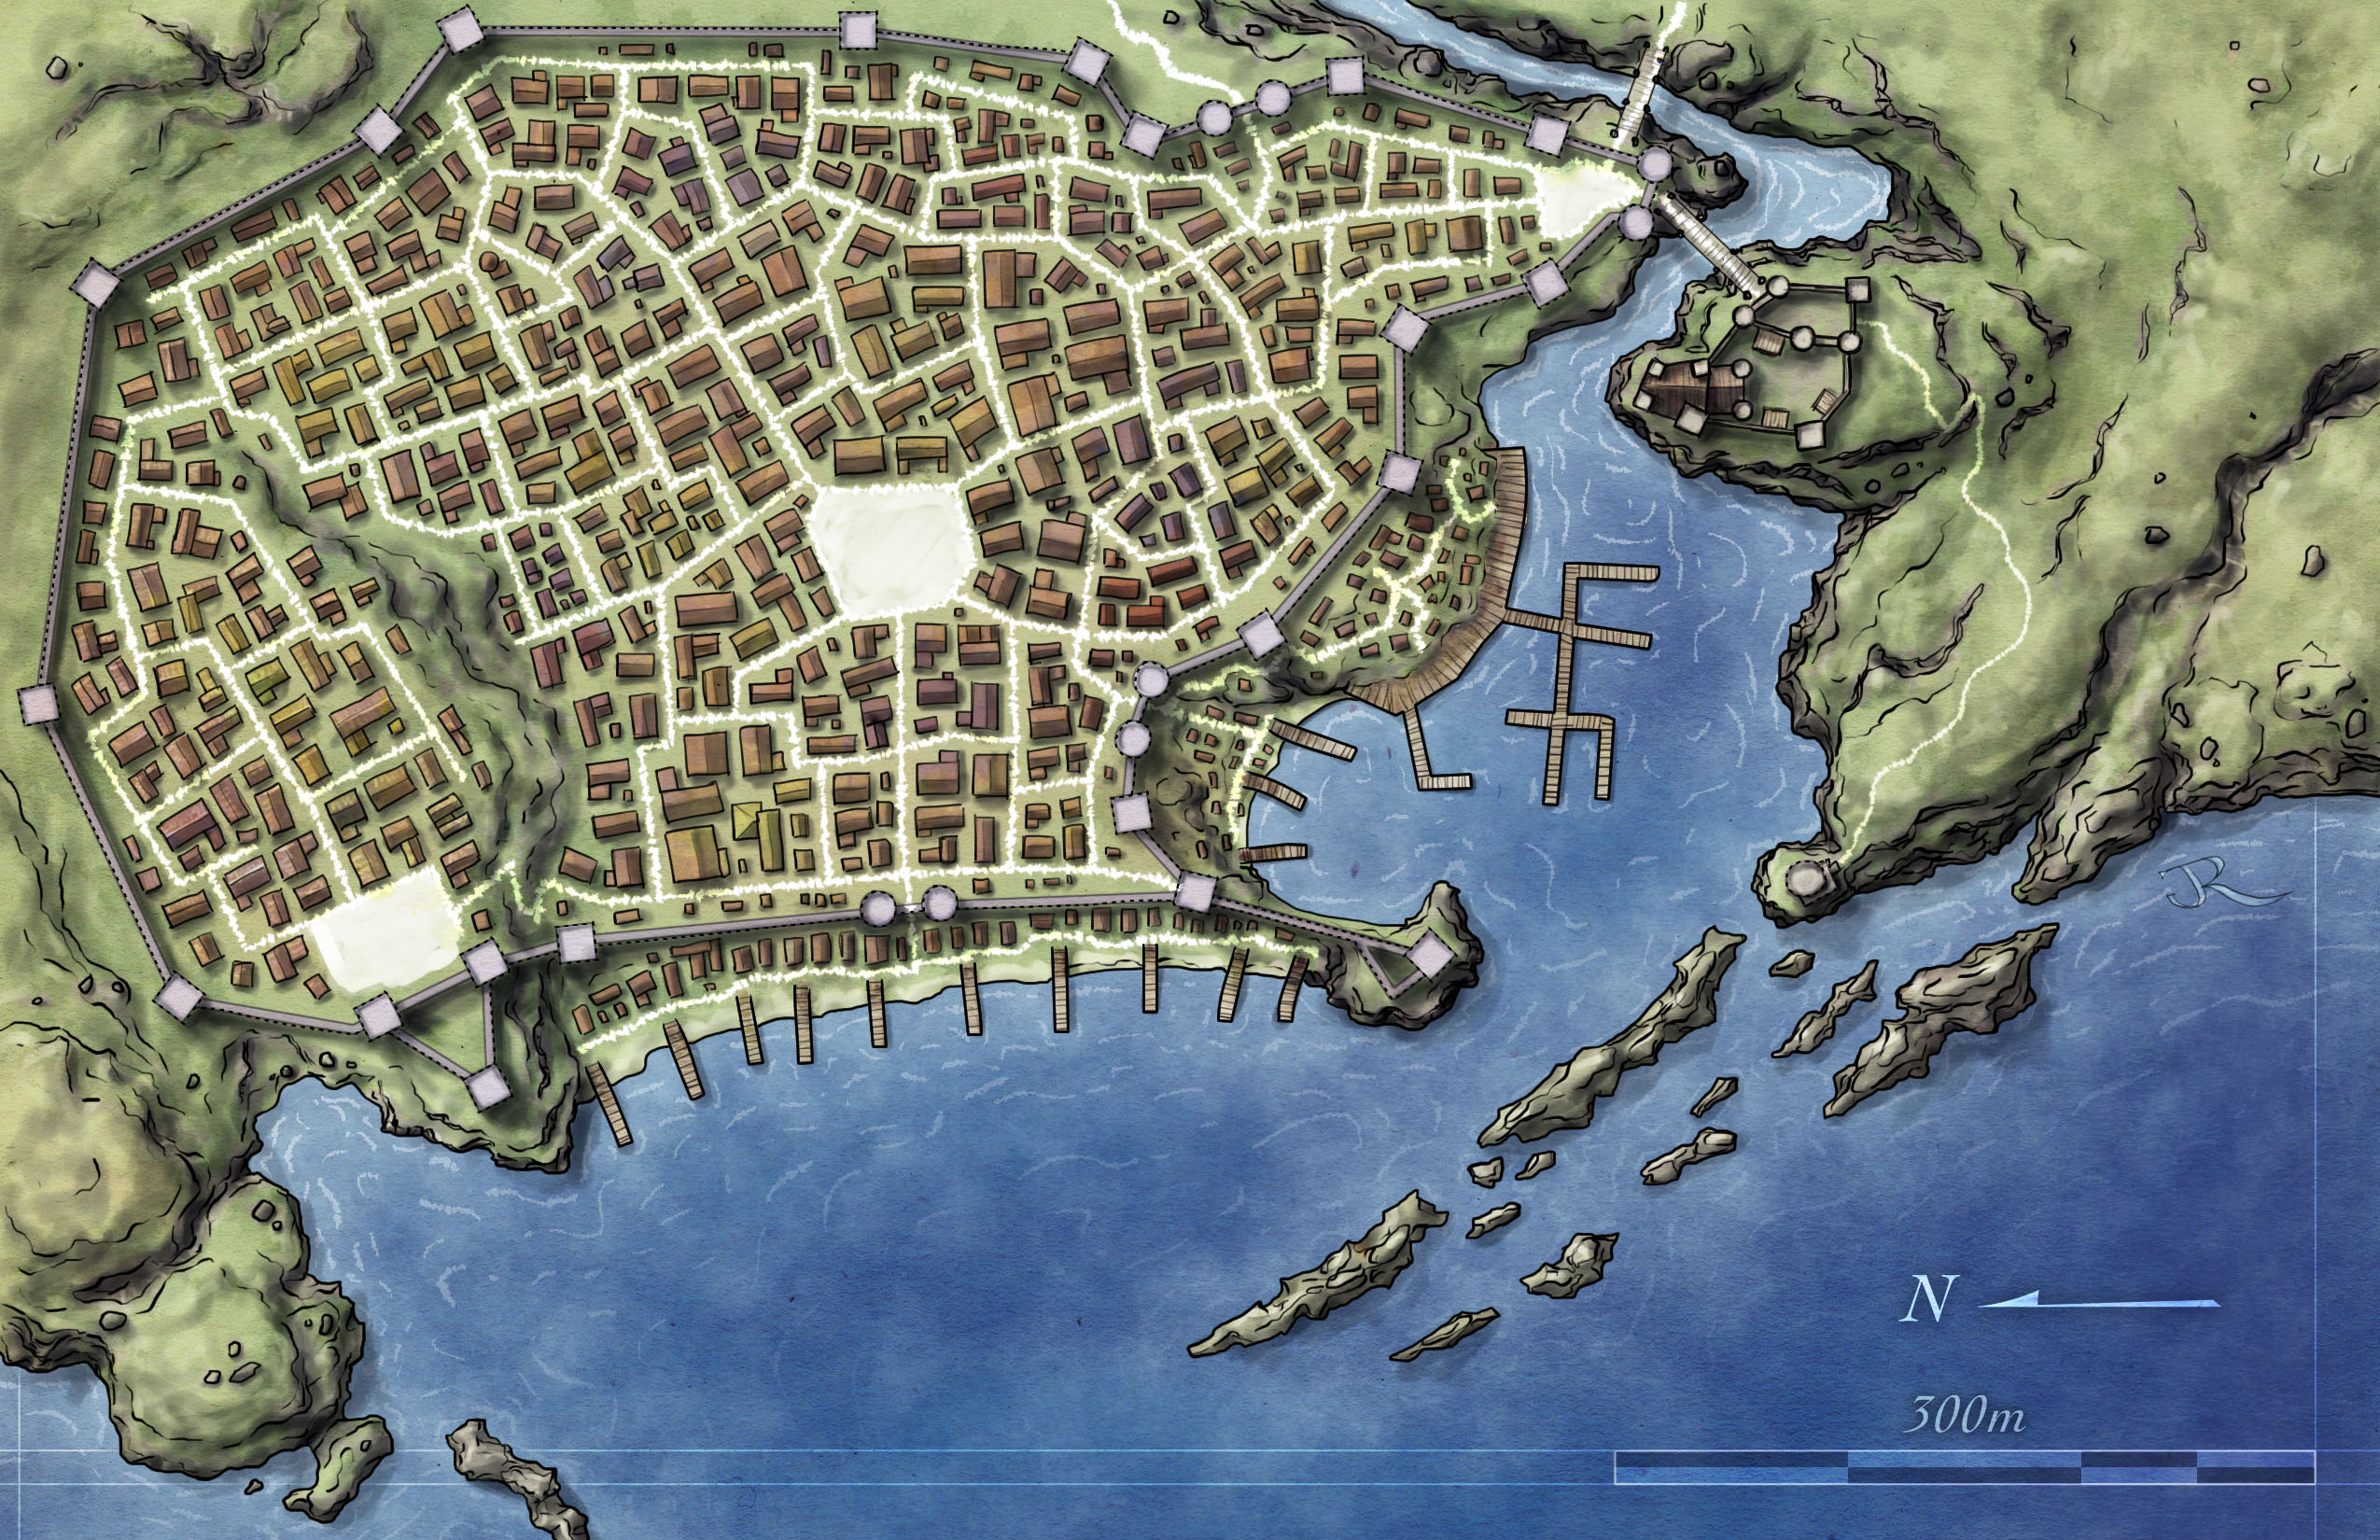 Free map of fantasy city for pathfinder and 4e dd fantastic maps free map of fantasy city for pathfinder and 4e dd gumiabroncs Gallery